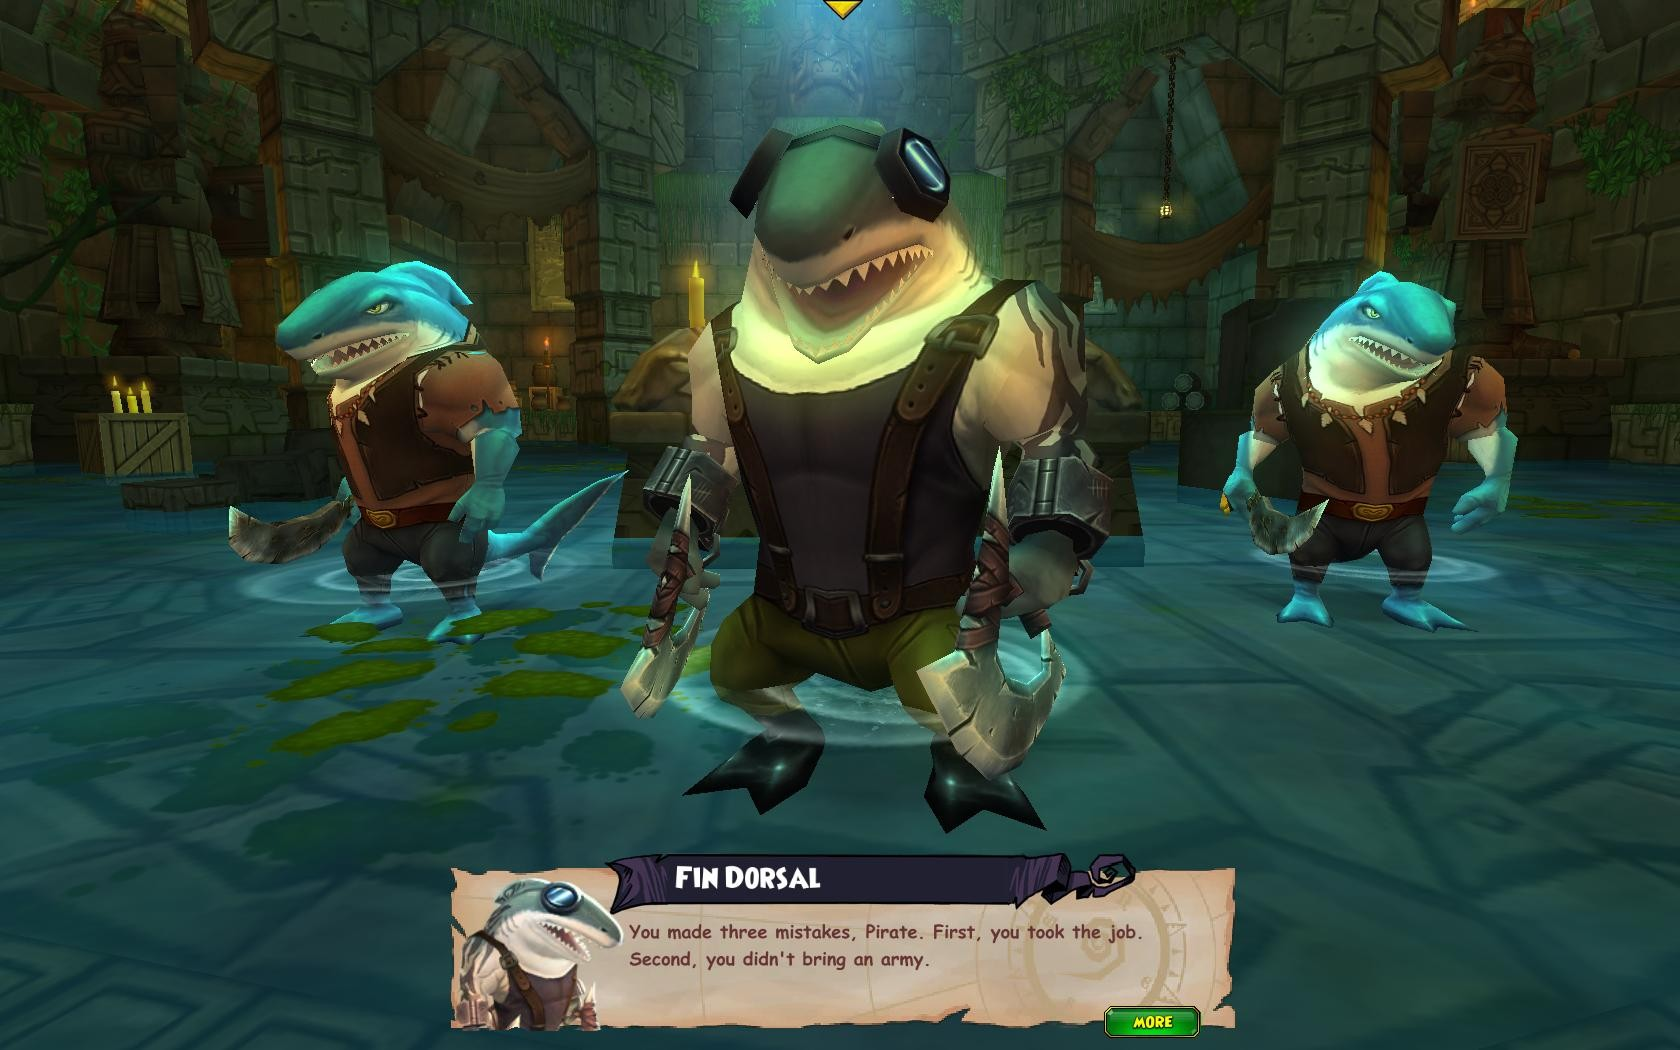 Pirate101 - Chronicles of Riddick? In my pirate game?